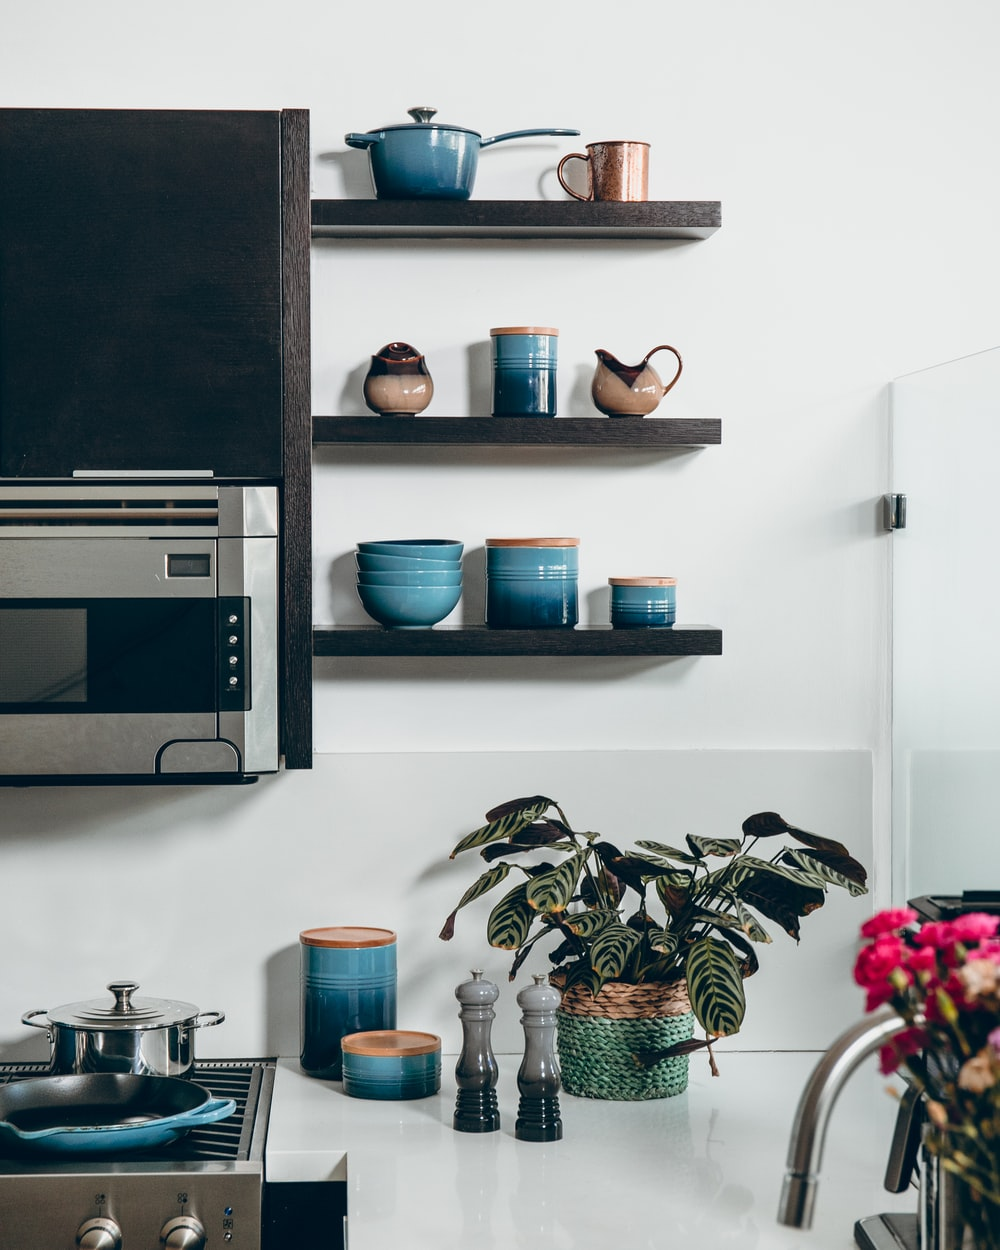 microwave beside containers on floating shelves